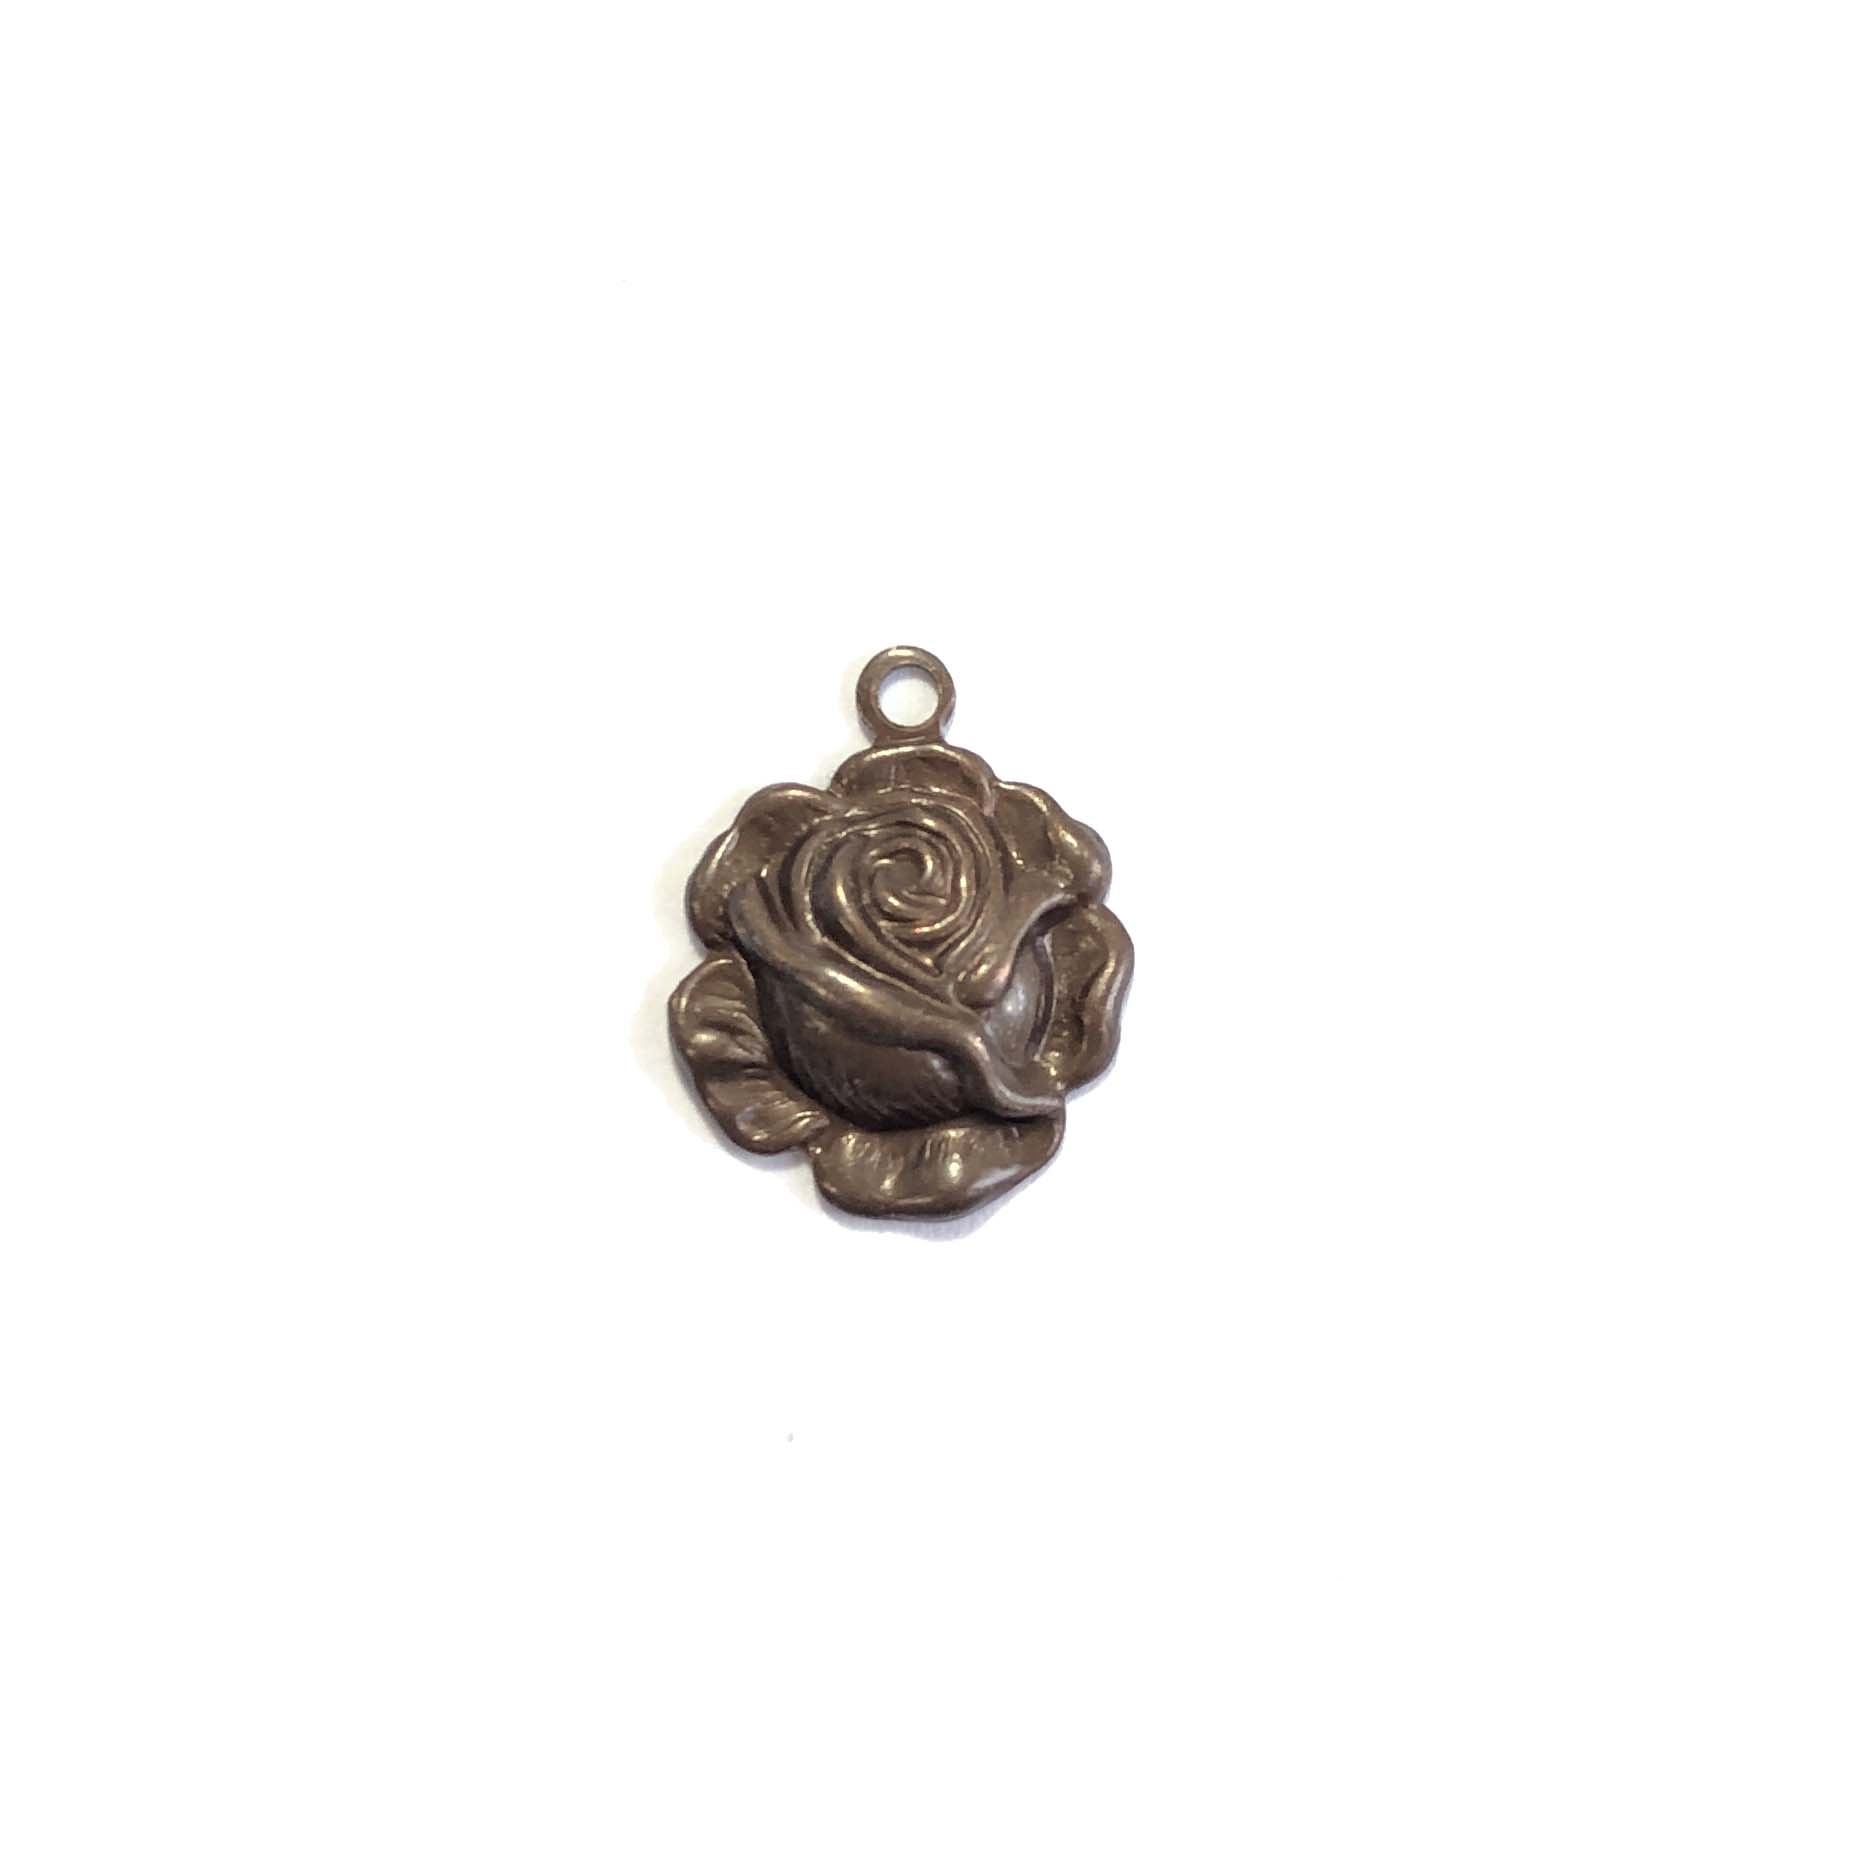 Rose Charm, Choxie, 0139, jewelry making, B'sue Boutiques, lead free, jewelry supplies, jewelry making, vintage supplies, rose pendants, brass, rose, pendant, 12mm, charm, flower